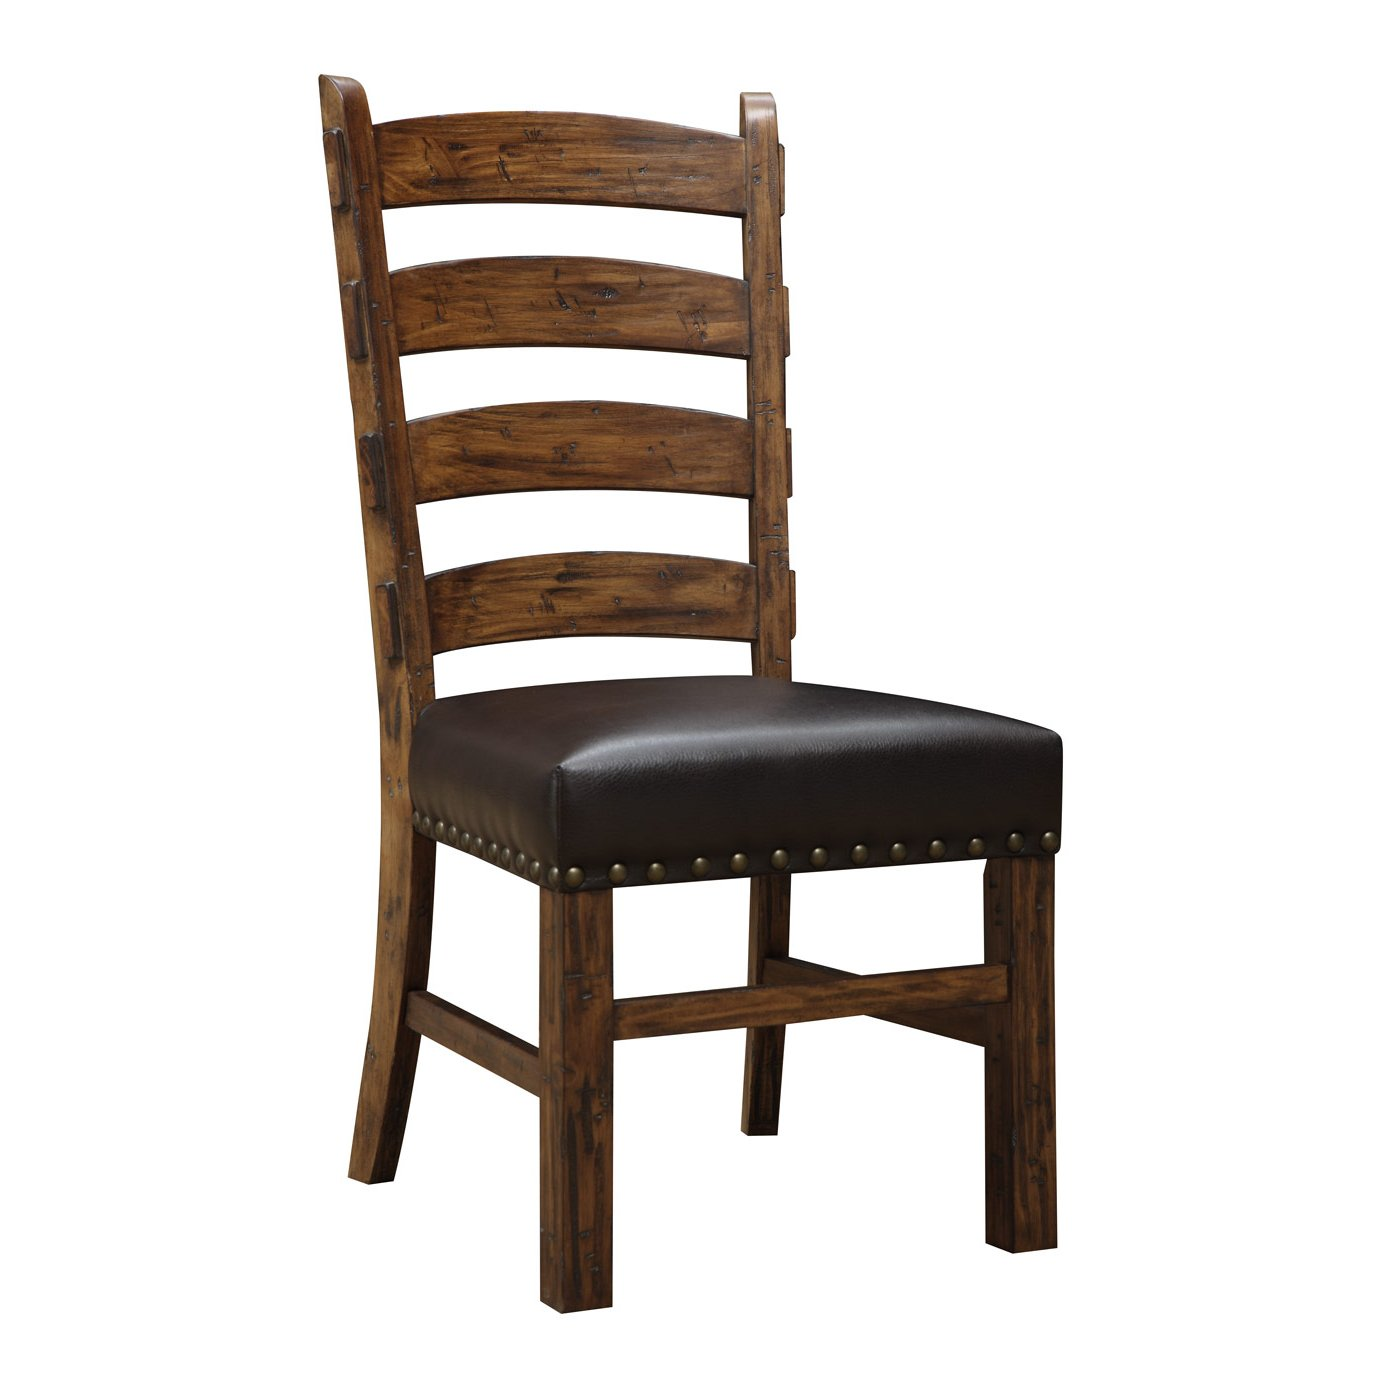 https://static.rcwilley.com/products/3906159/Brown-Upholstered-Ladder-Back-Dining-Room-Chair---Chambers-Creek--rcwilley-image1~1000.jpg?r=8